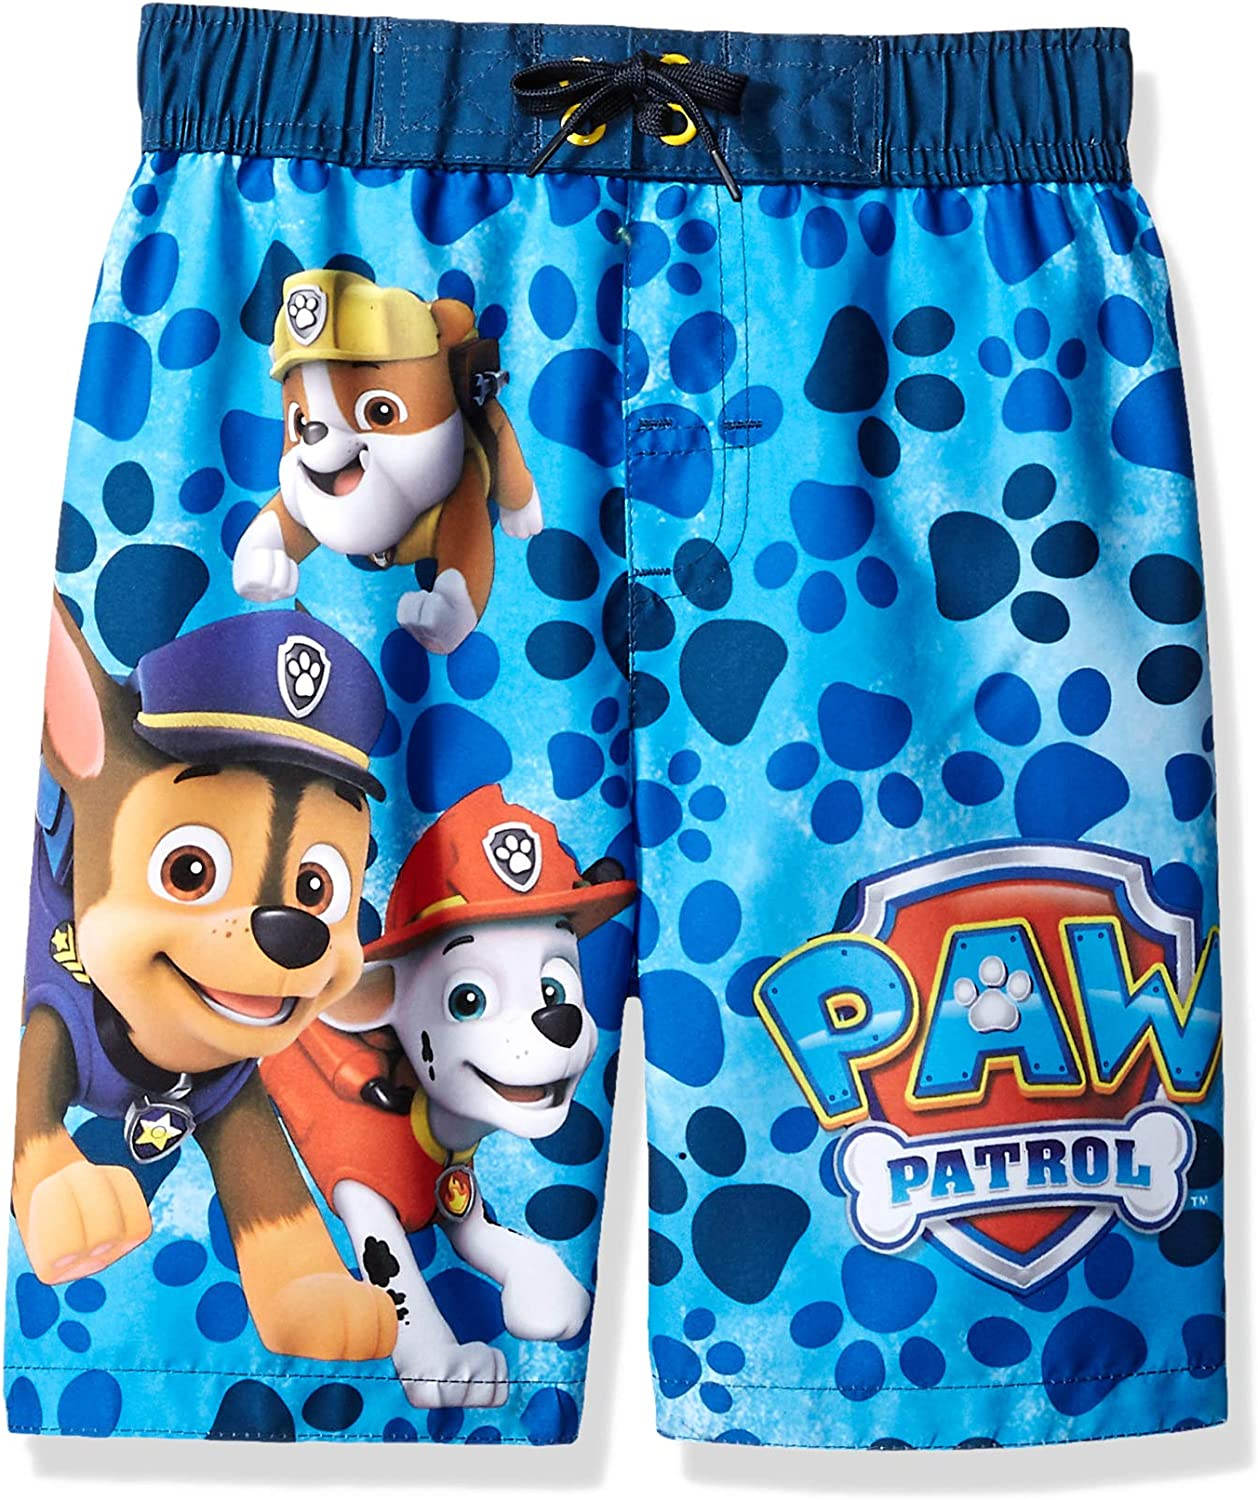 Paw Pa-Trol Boys Swim Trunks Beach Shorts Board Shorts with Pockets for 7-20 Years